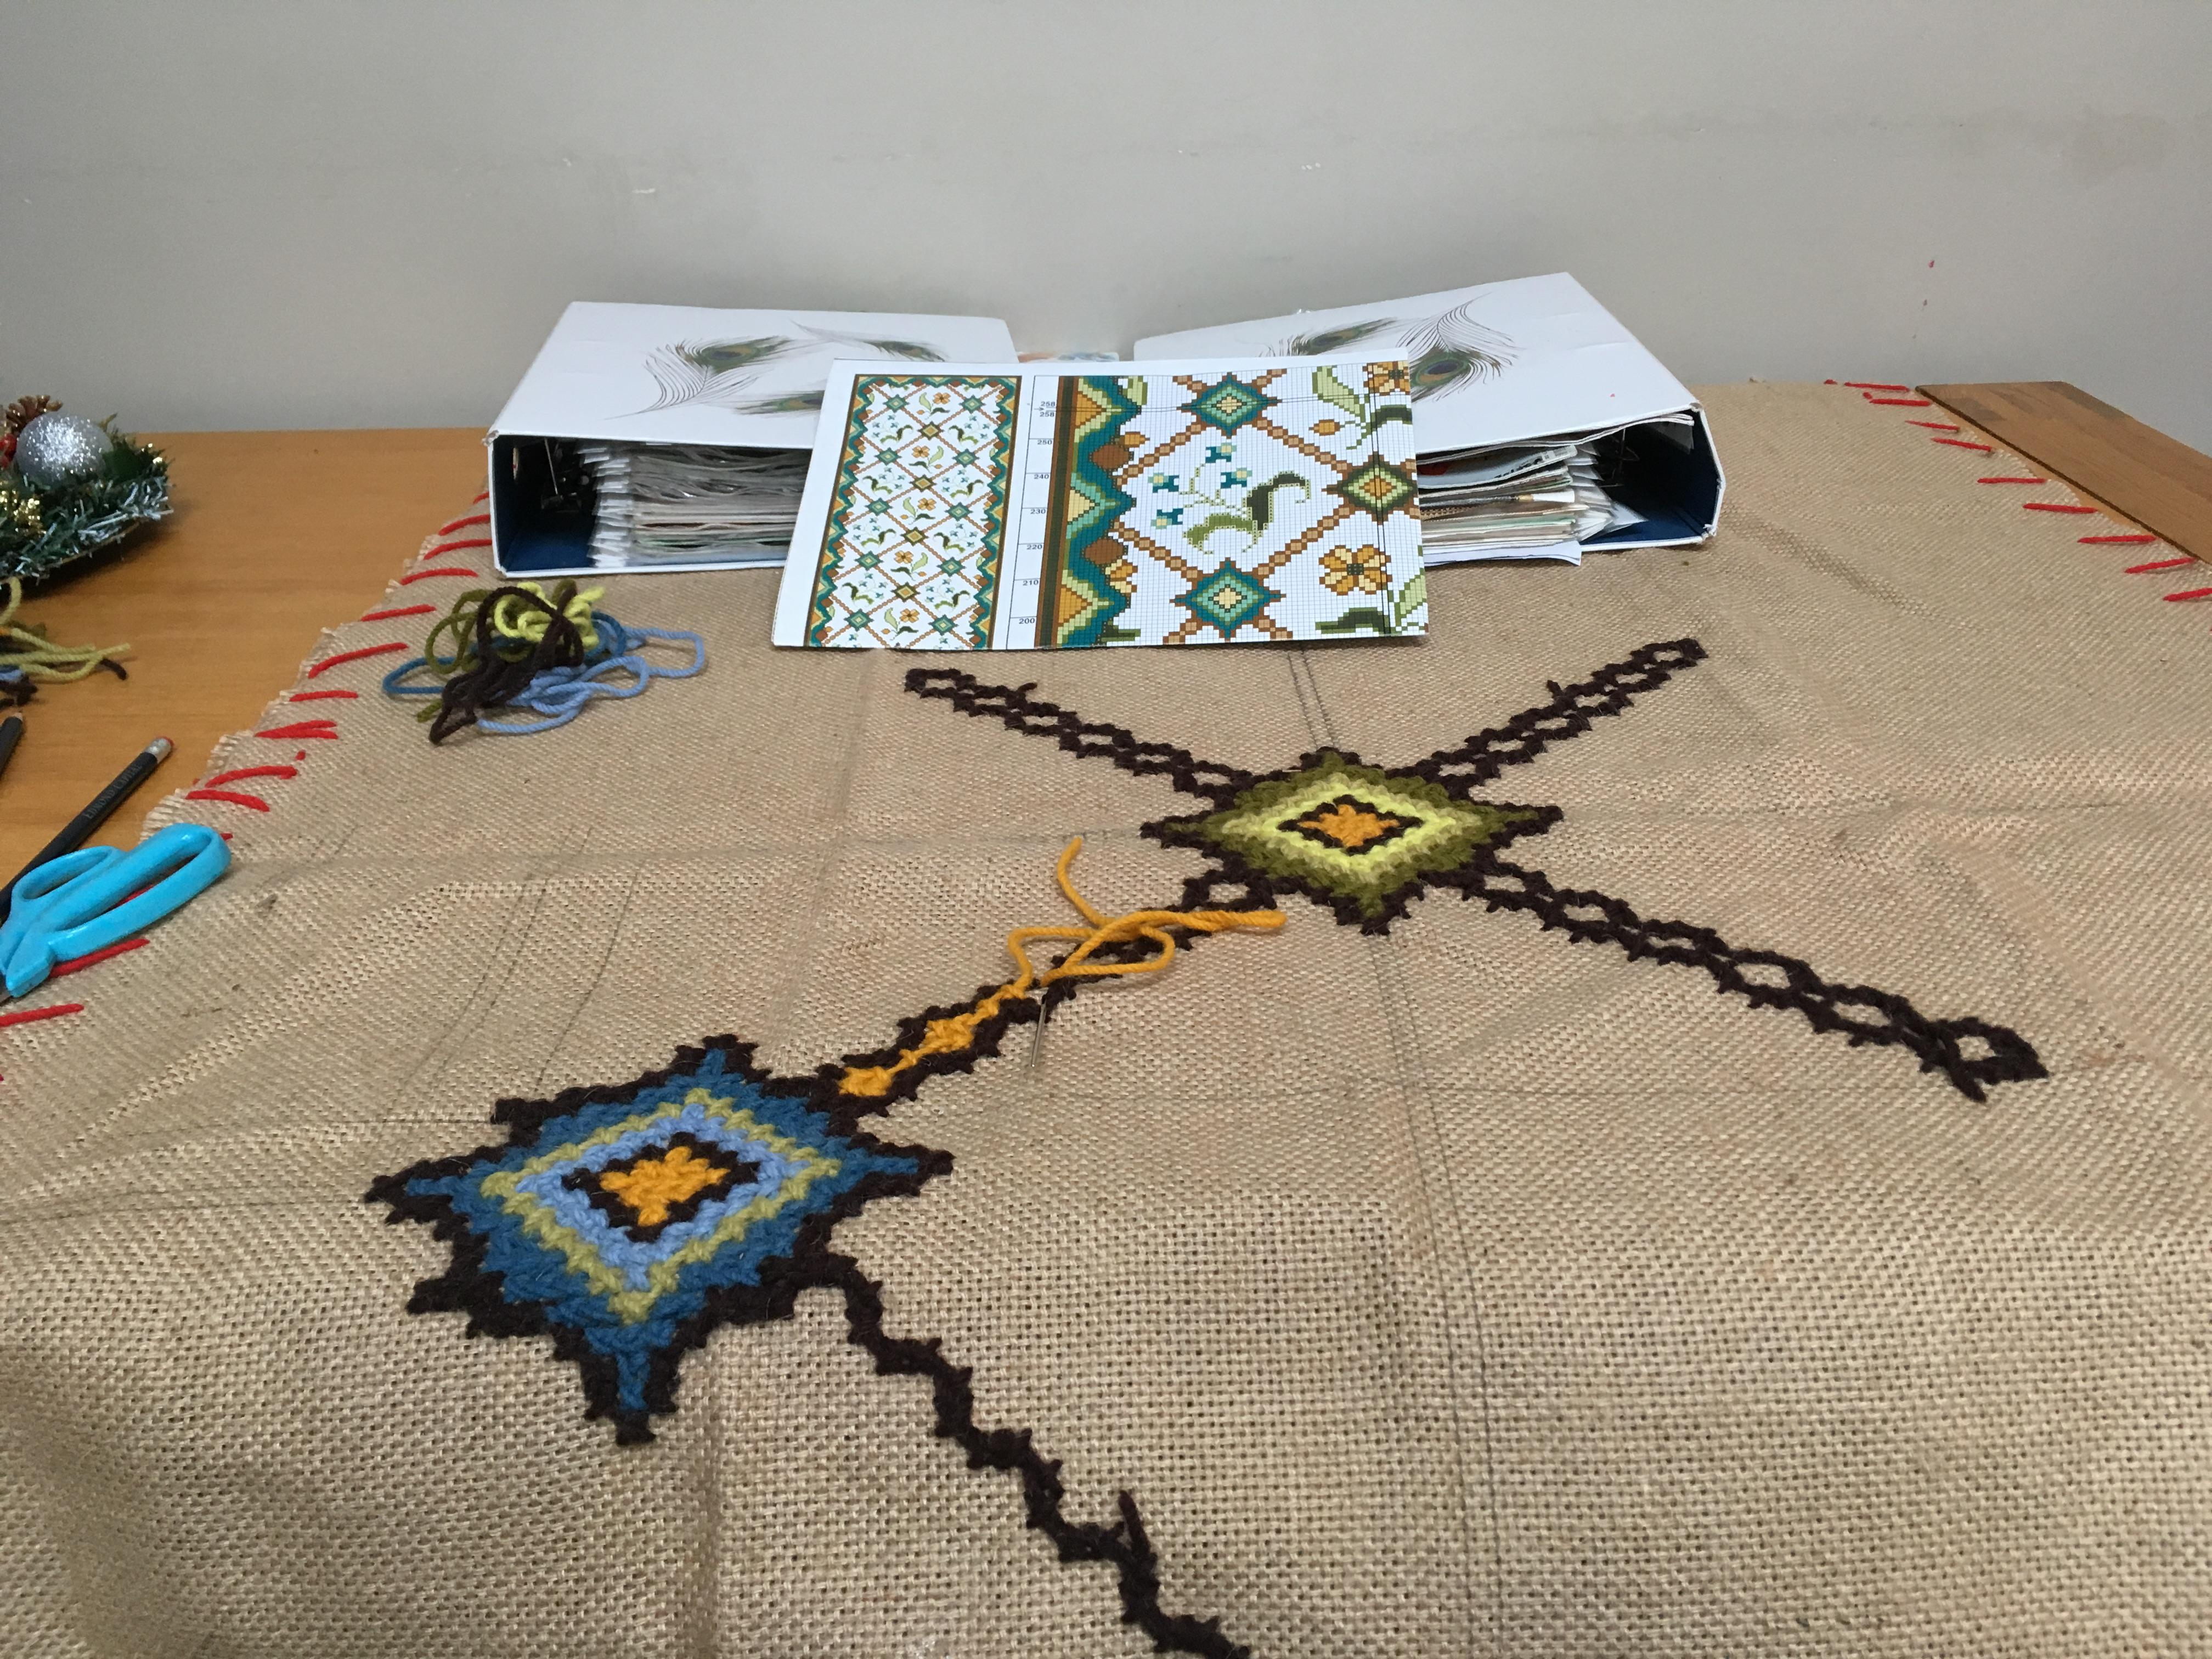 Wool tapestry rug making course